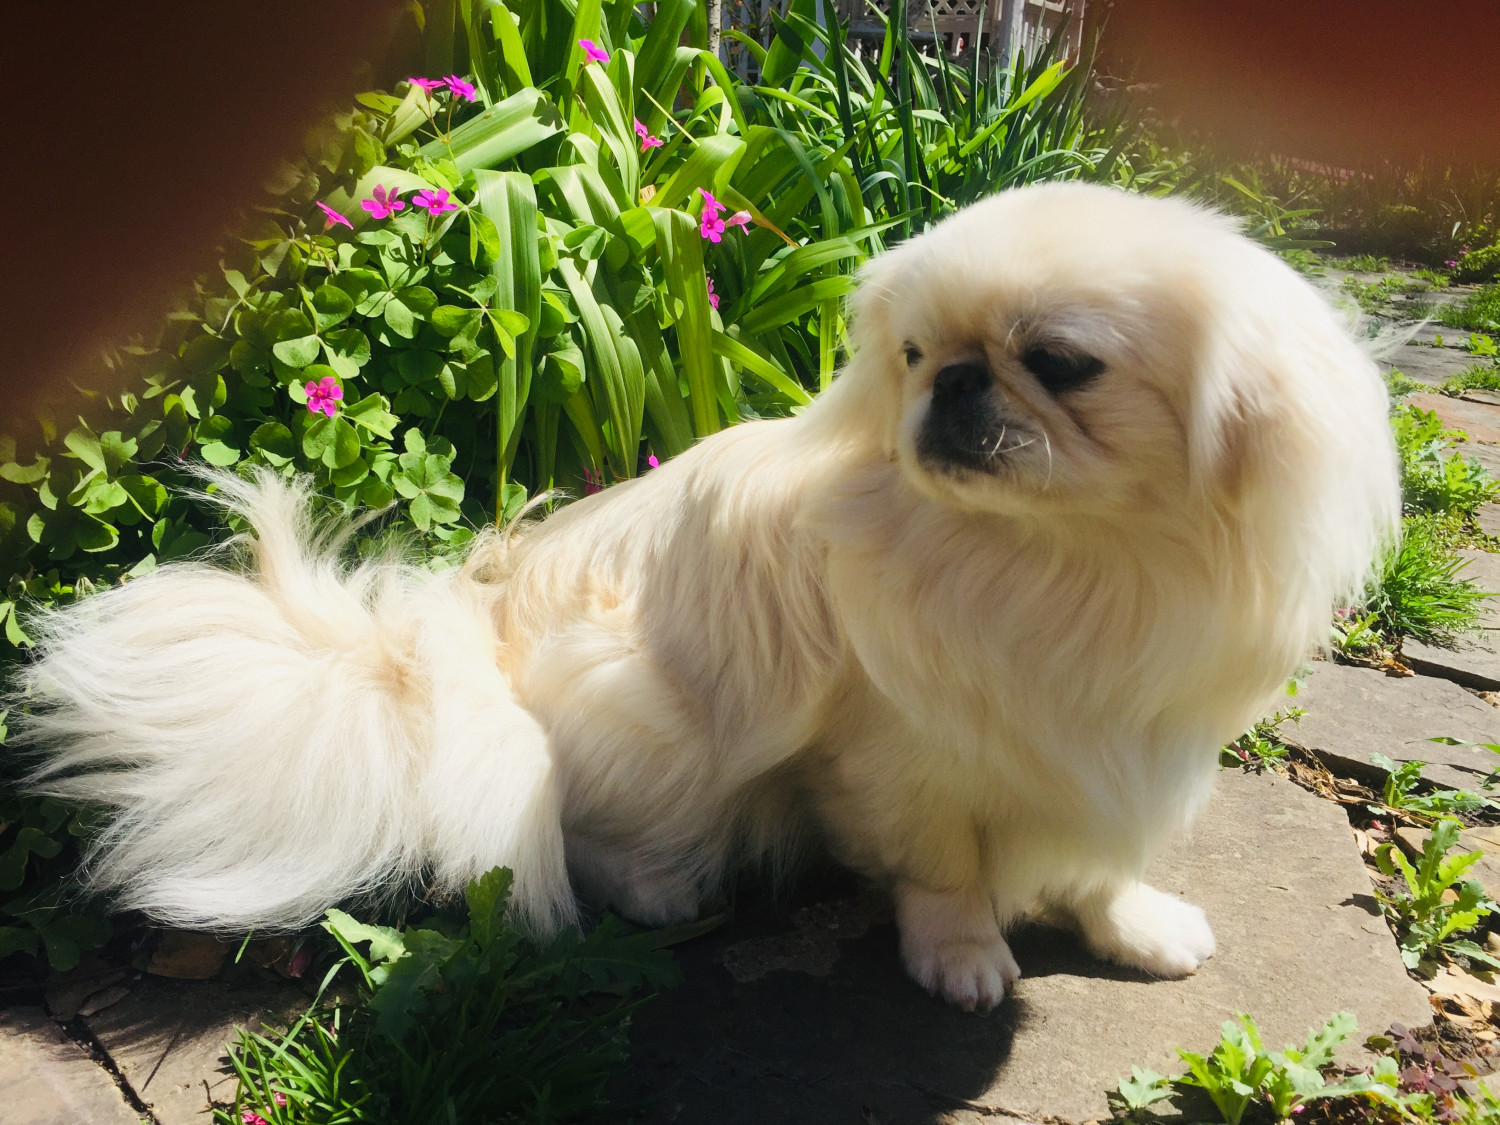 Pekingese Puppies for Sale in Vermont USA